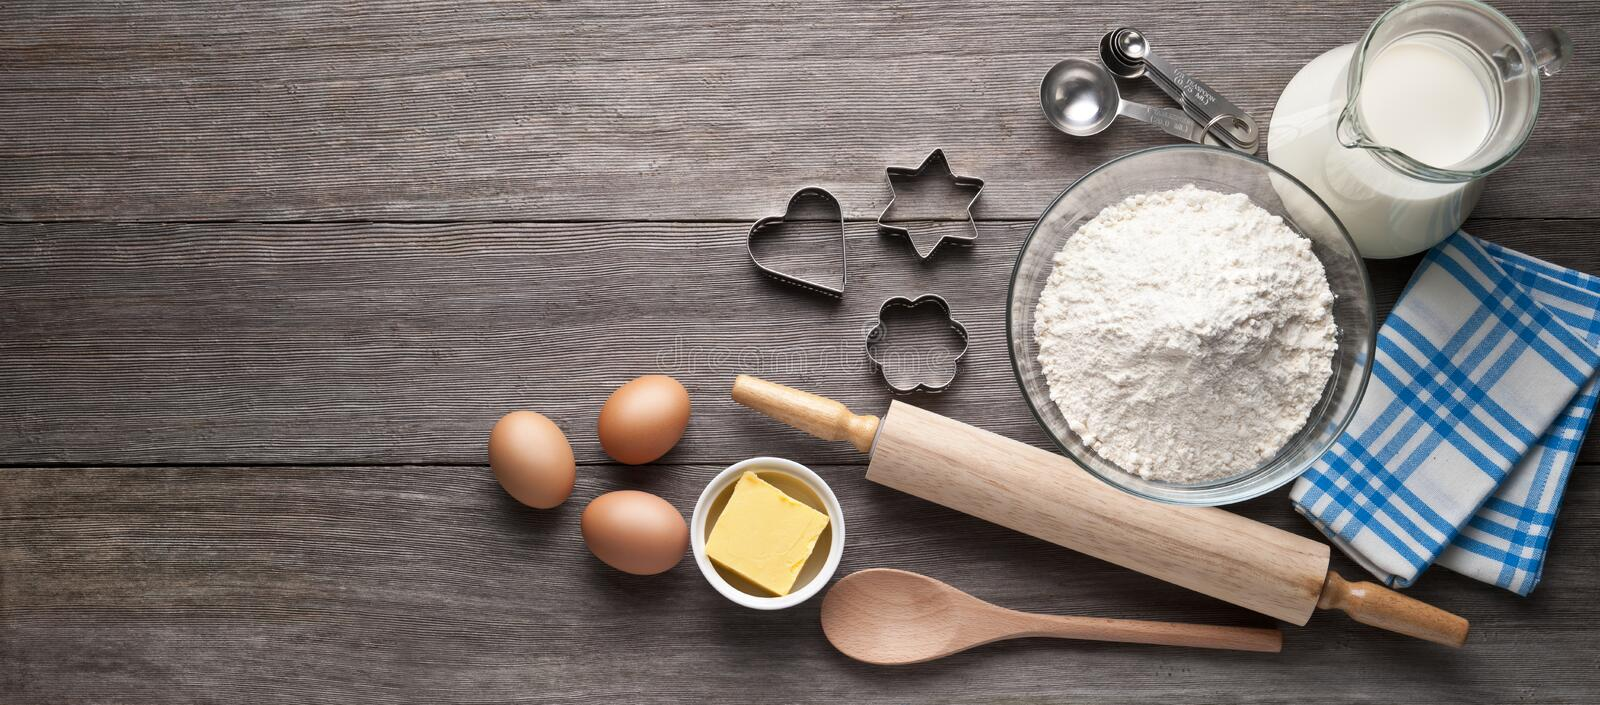 Cookies Baking Wood Ingredients Background royalty free stock photos